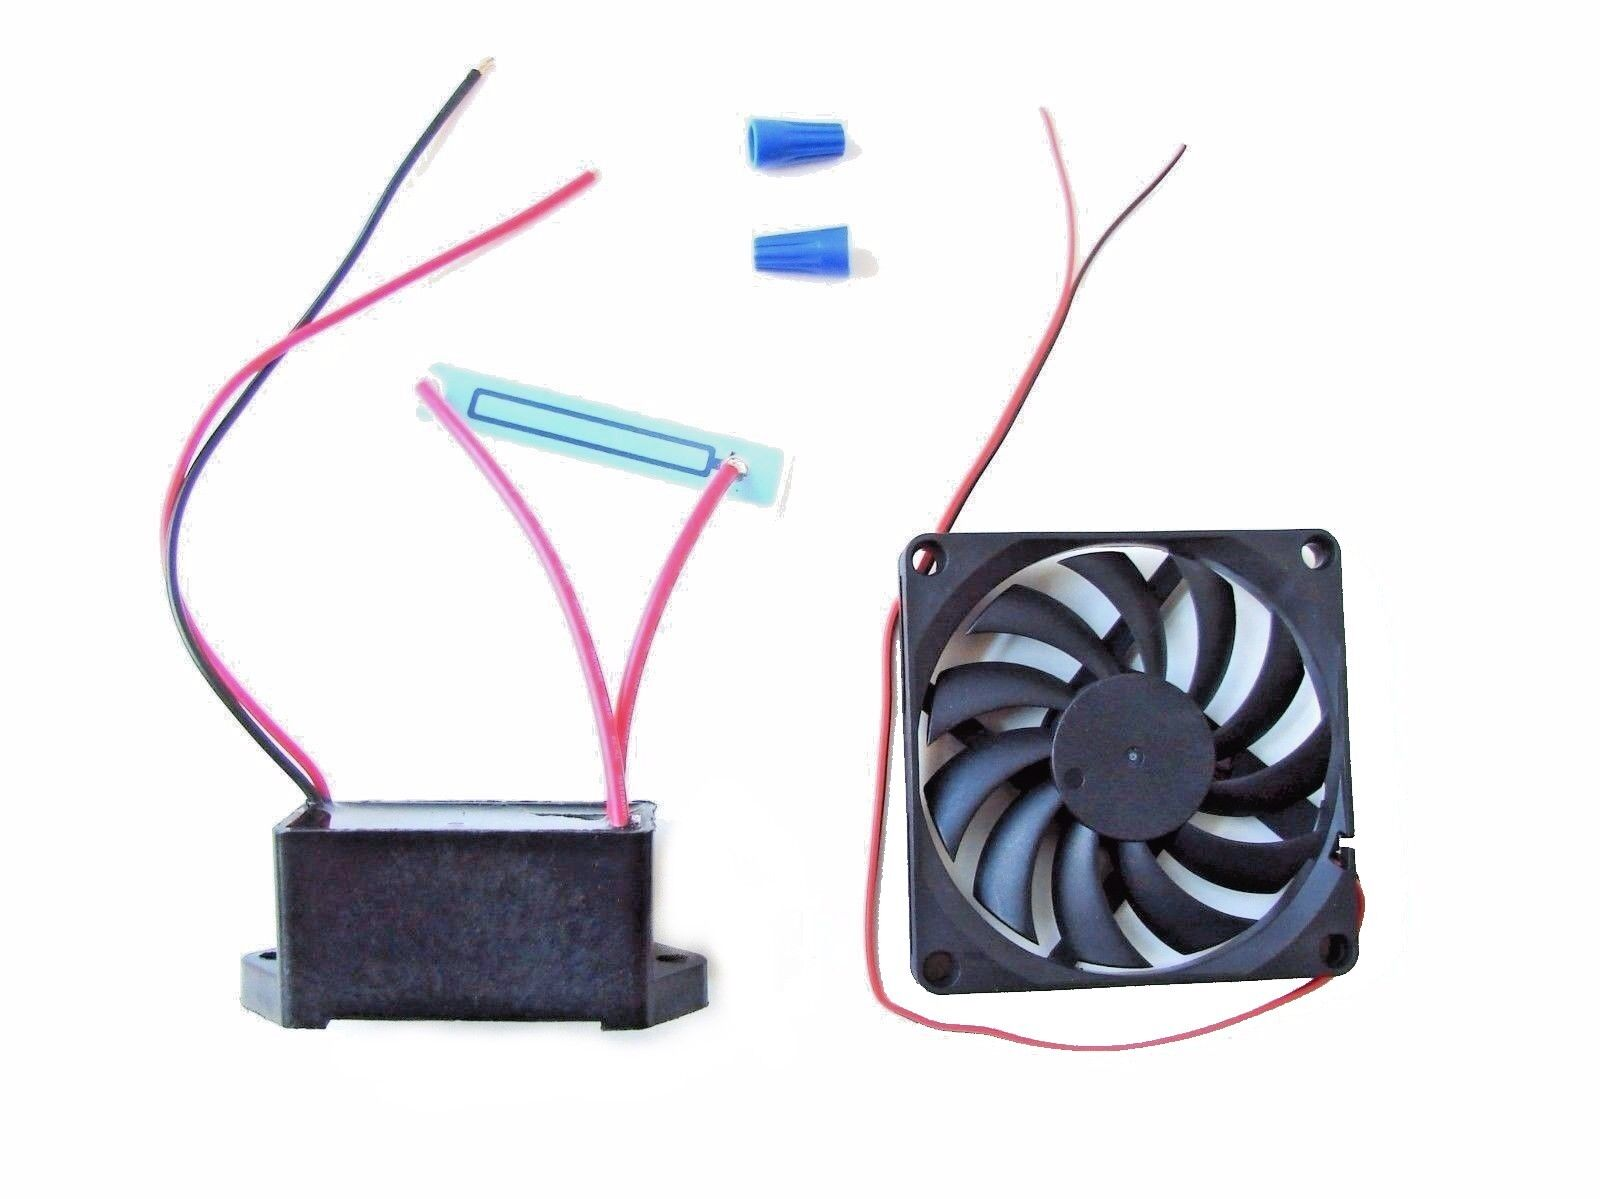 10 lot -12 Volt DC - 500 mg/hr Moisture Proof Ozone Generator Kit with a 12v Fan